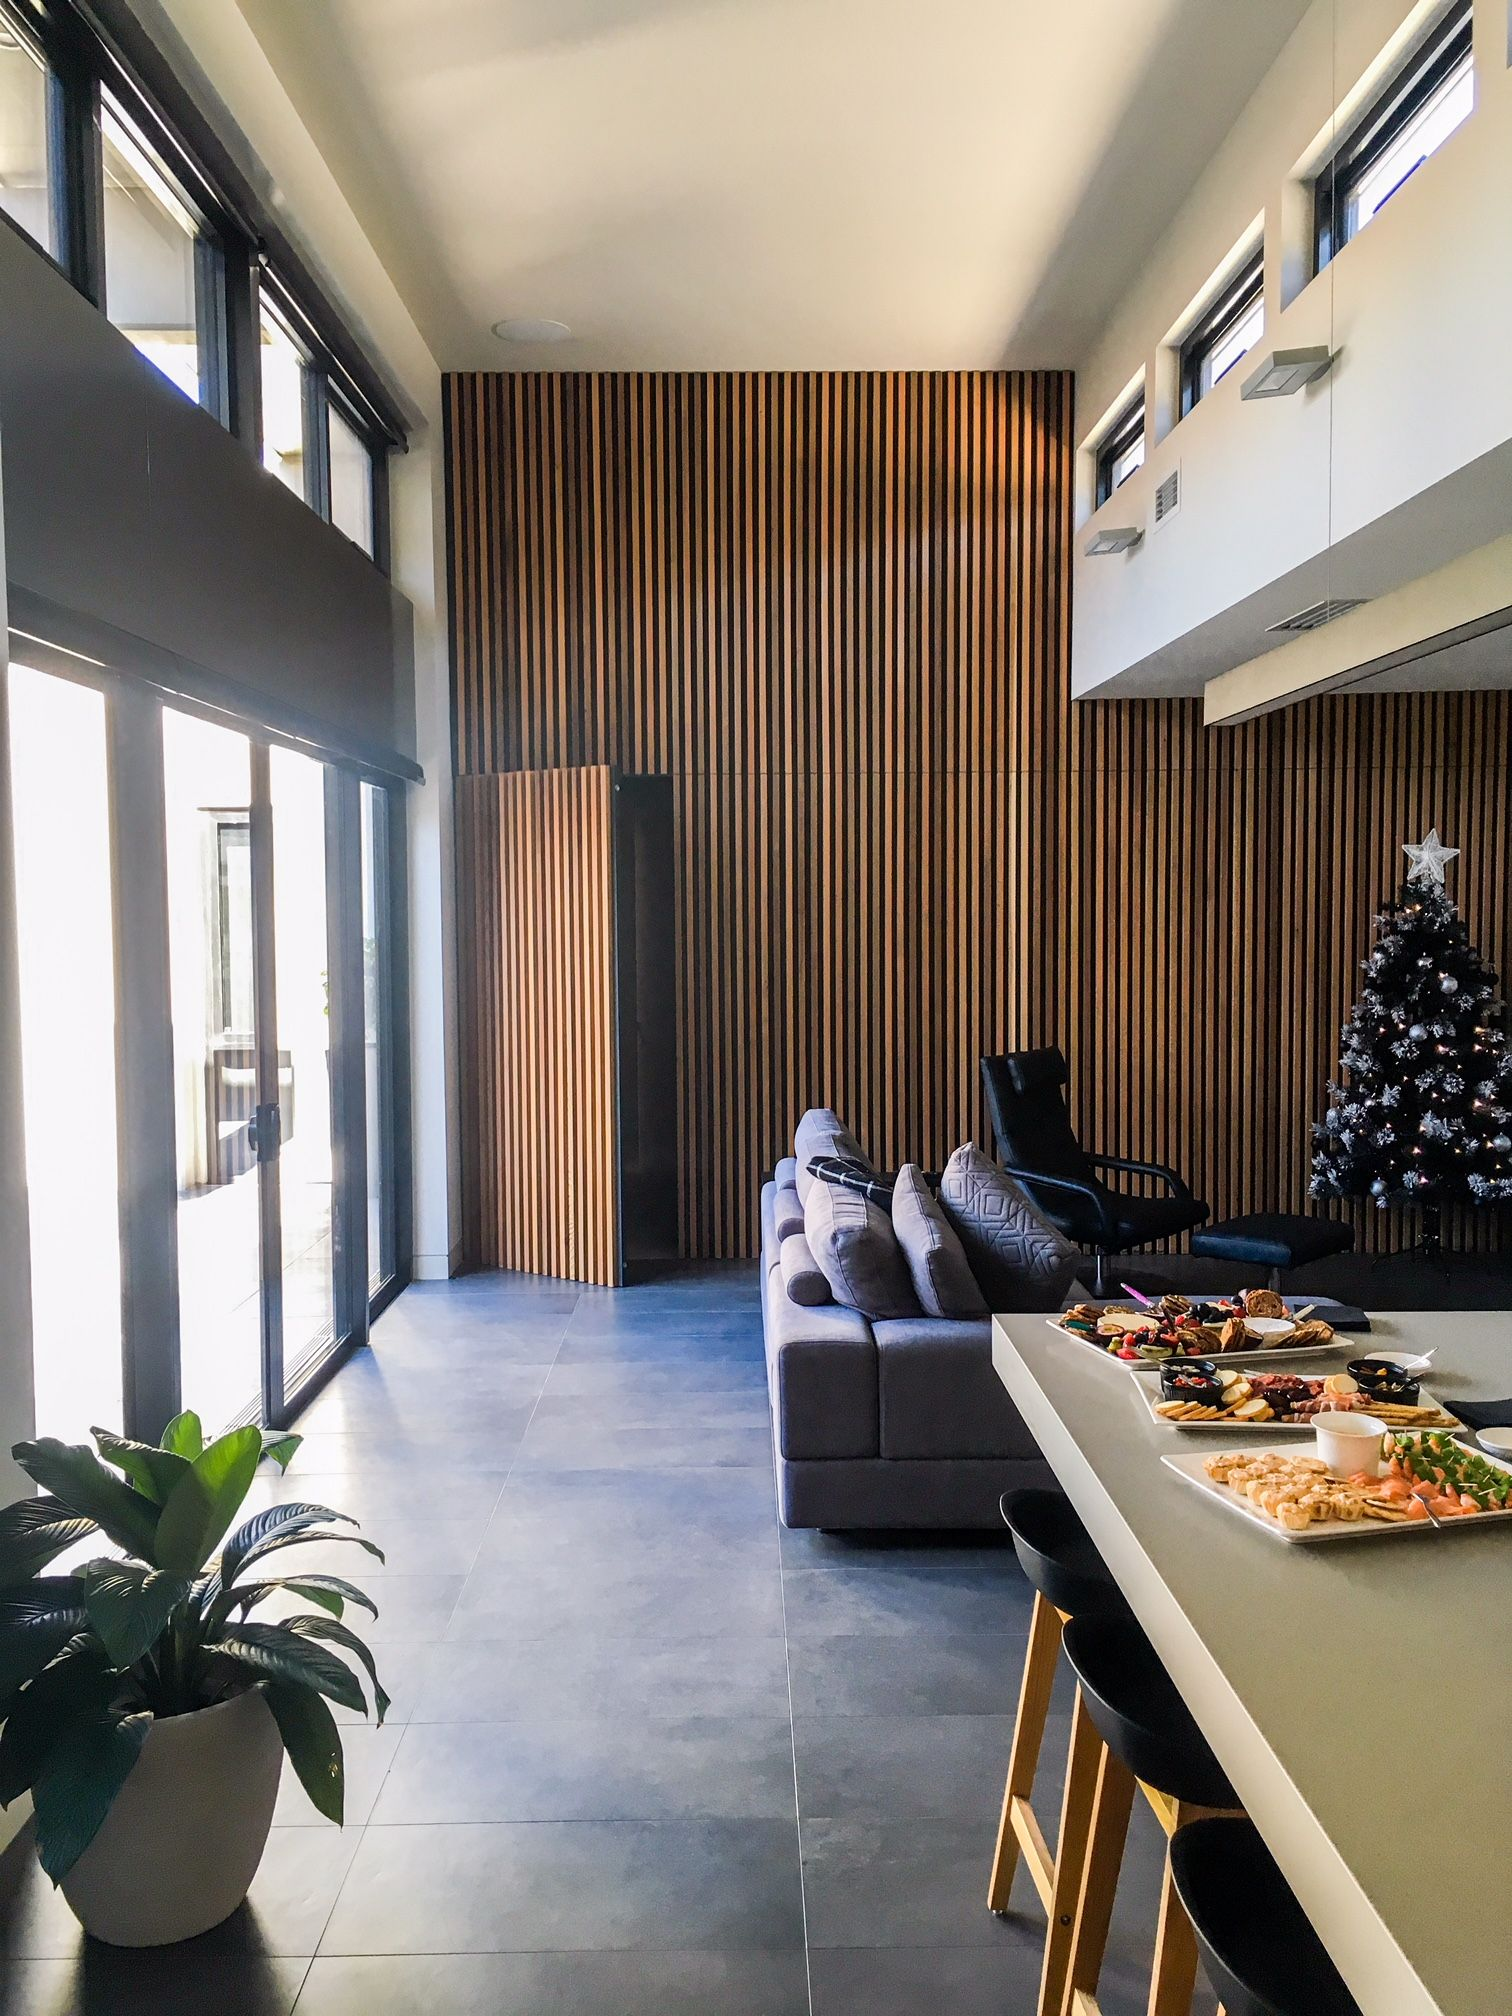 Yarra House II DNA Architects interior architecture design